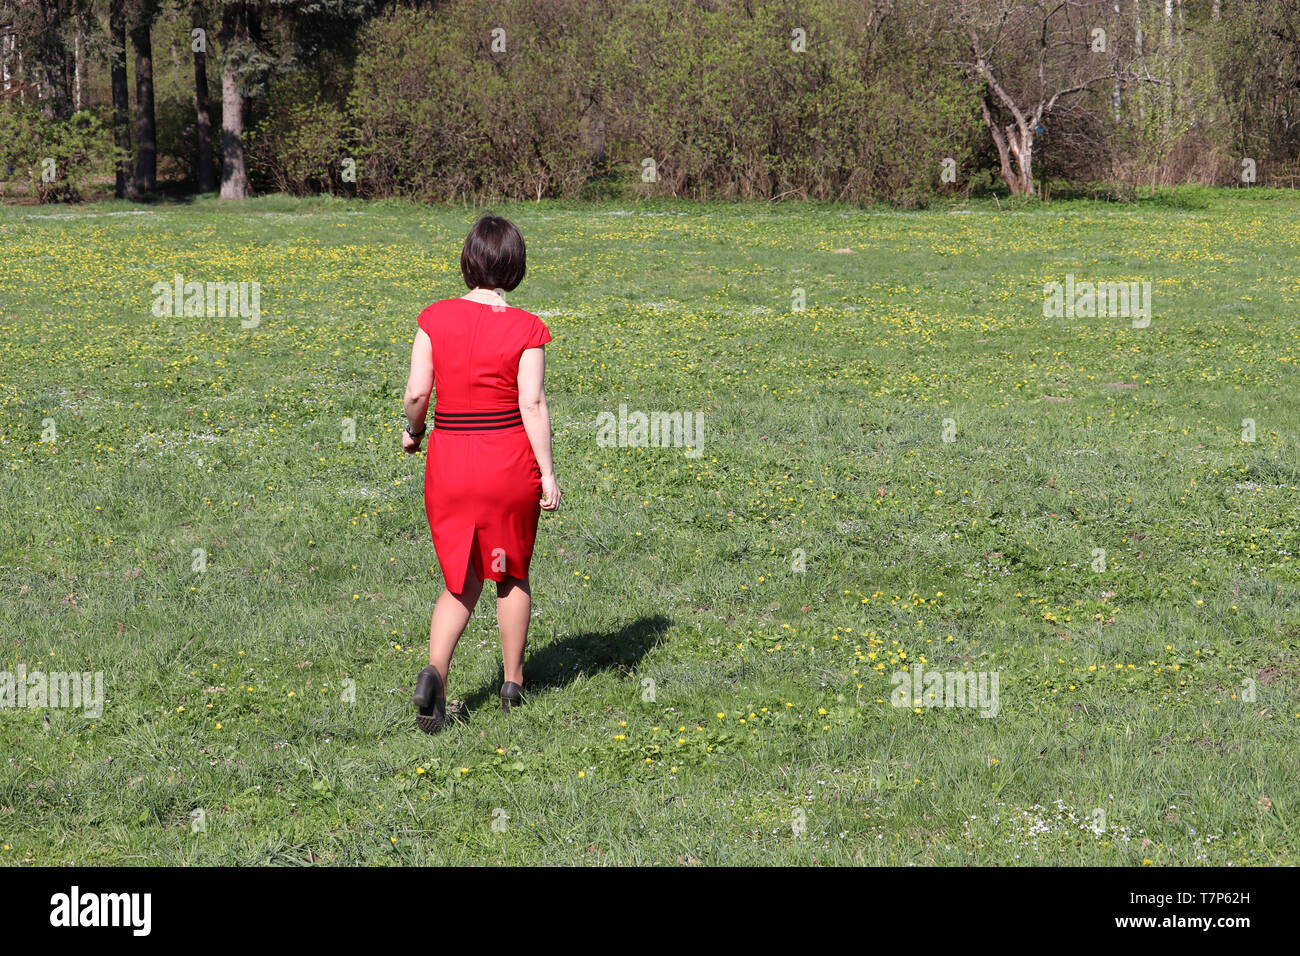 Stockfotosamp; Alamy Dress Run Woman Bilder b6Iyvgf7Y